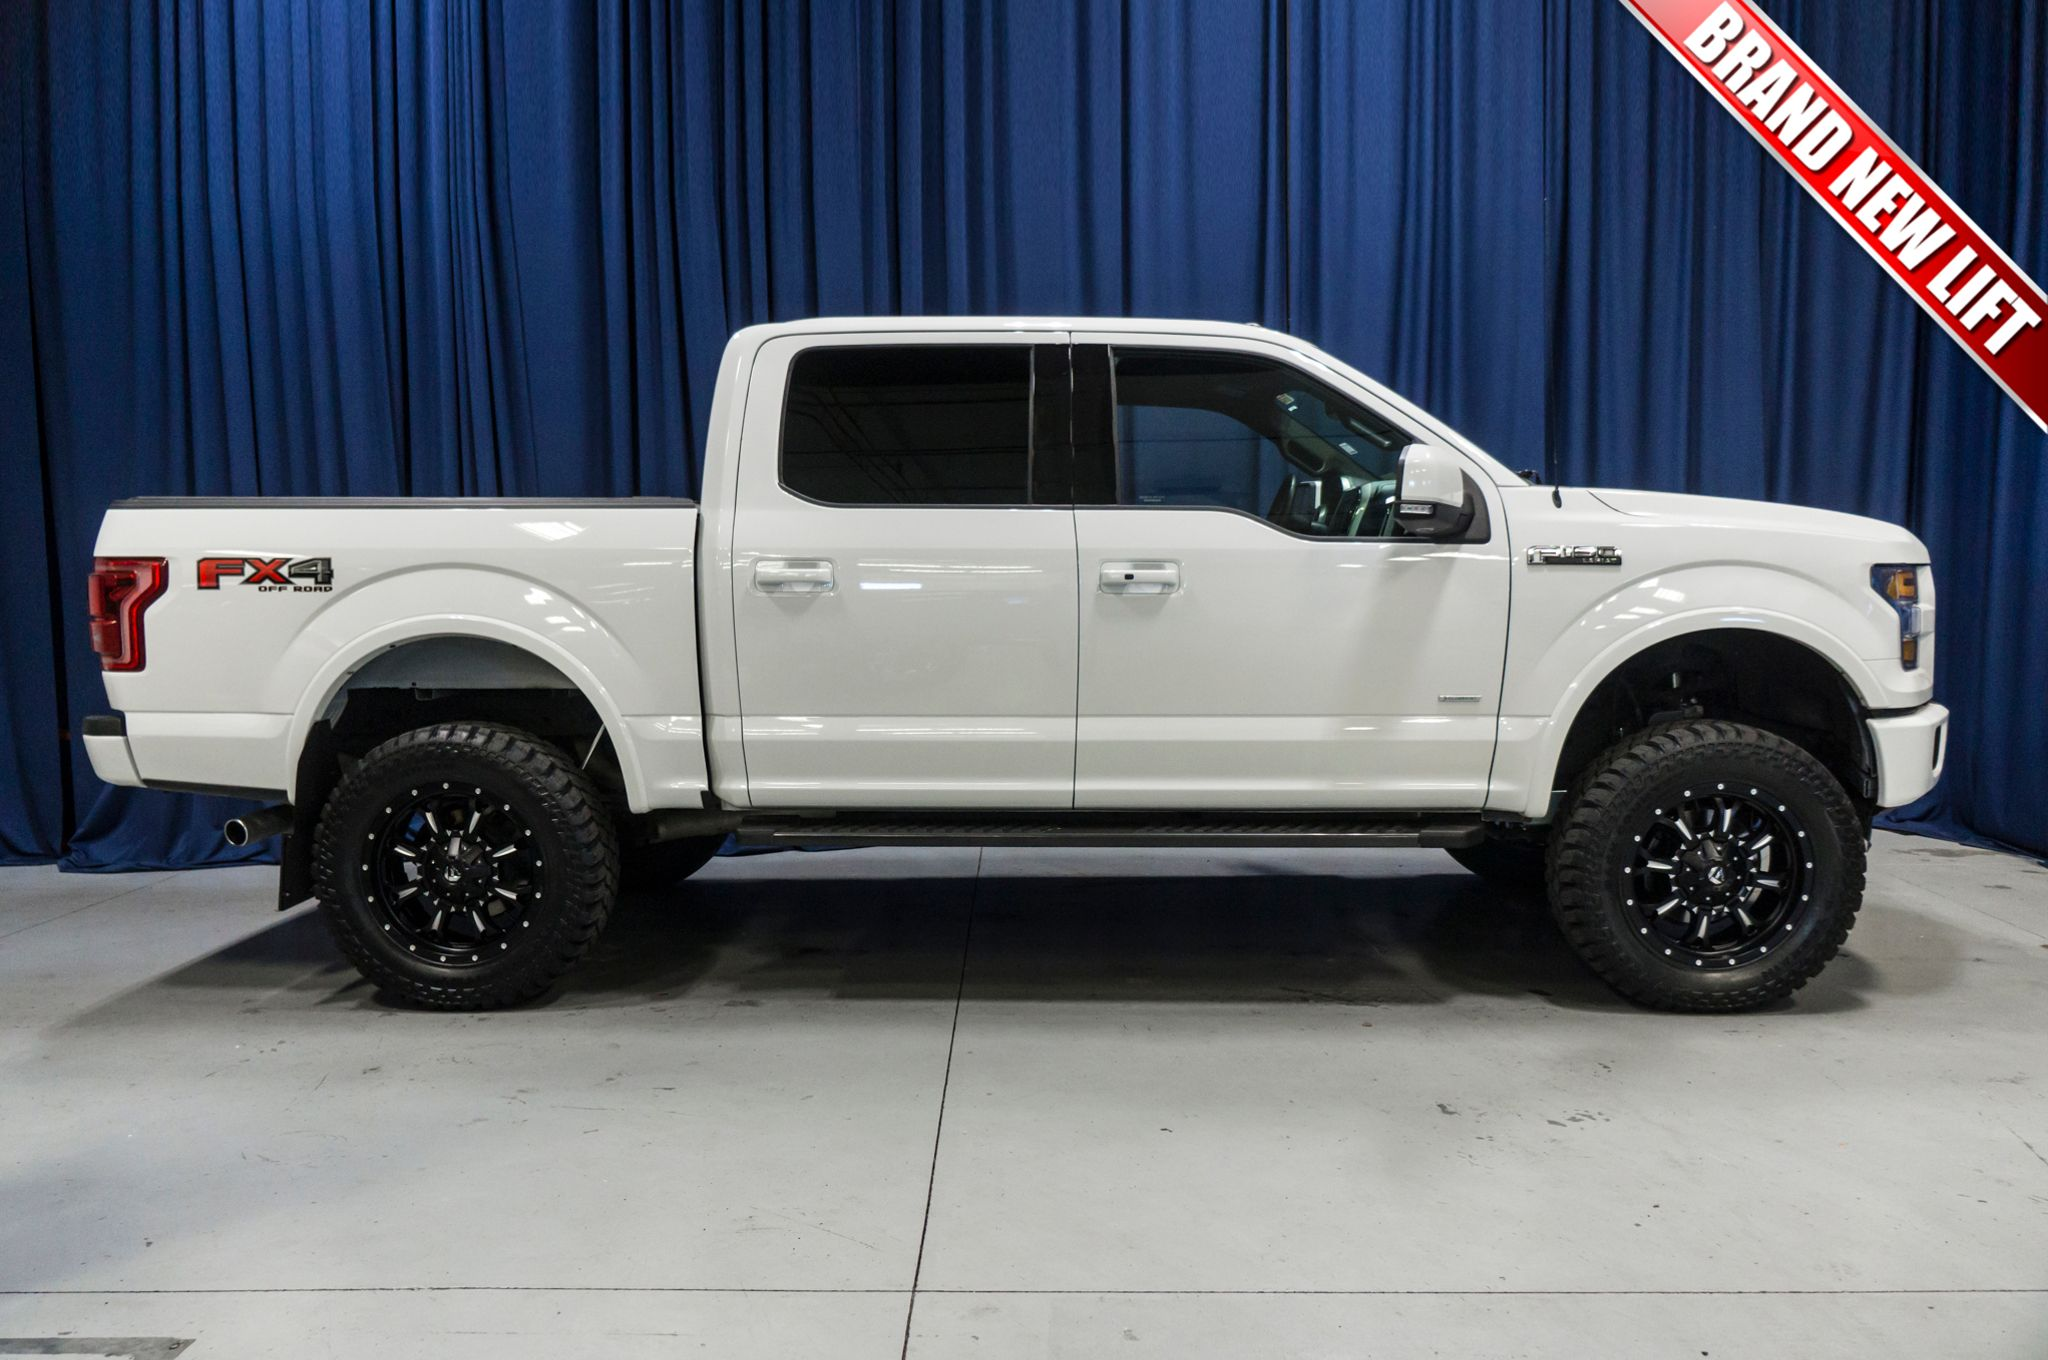 used lifted 2015 ford f 150 lariat fx4 4x4 truck for sale 44617. Black Bedroom Furniture Sets. Home Design Ideas